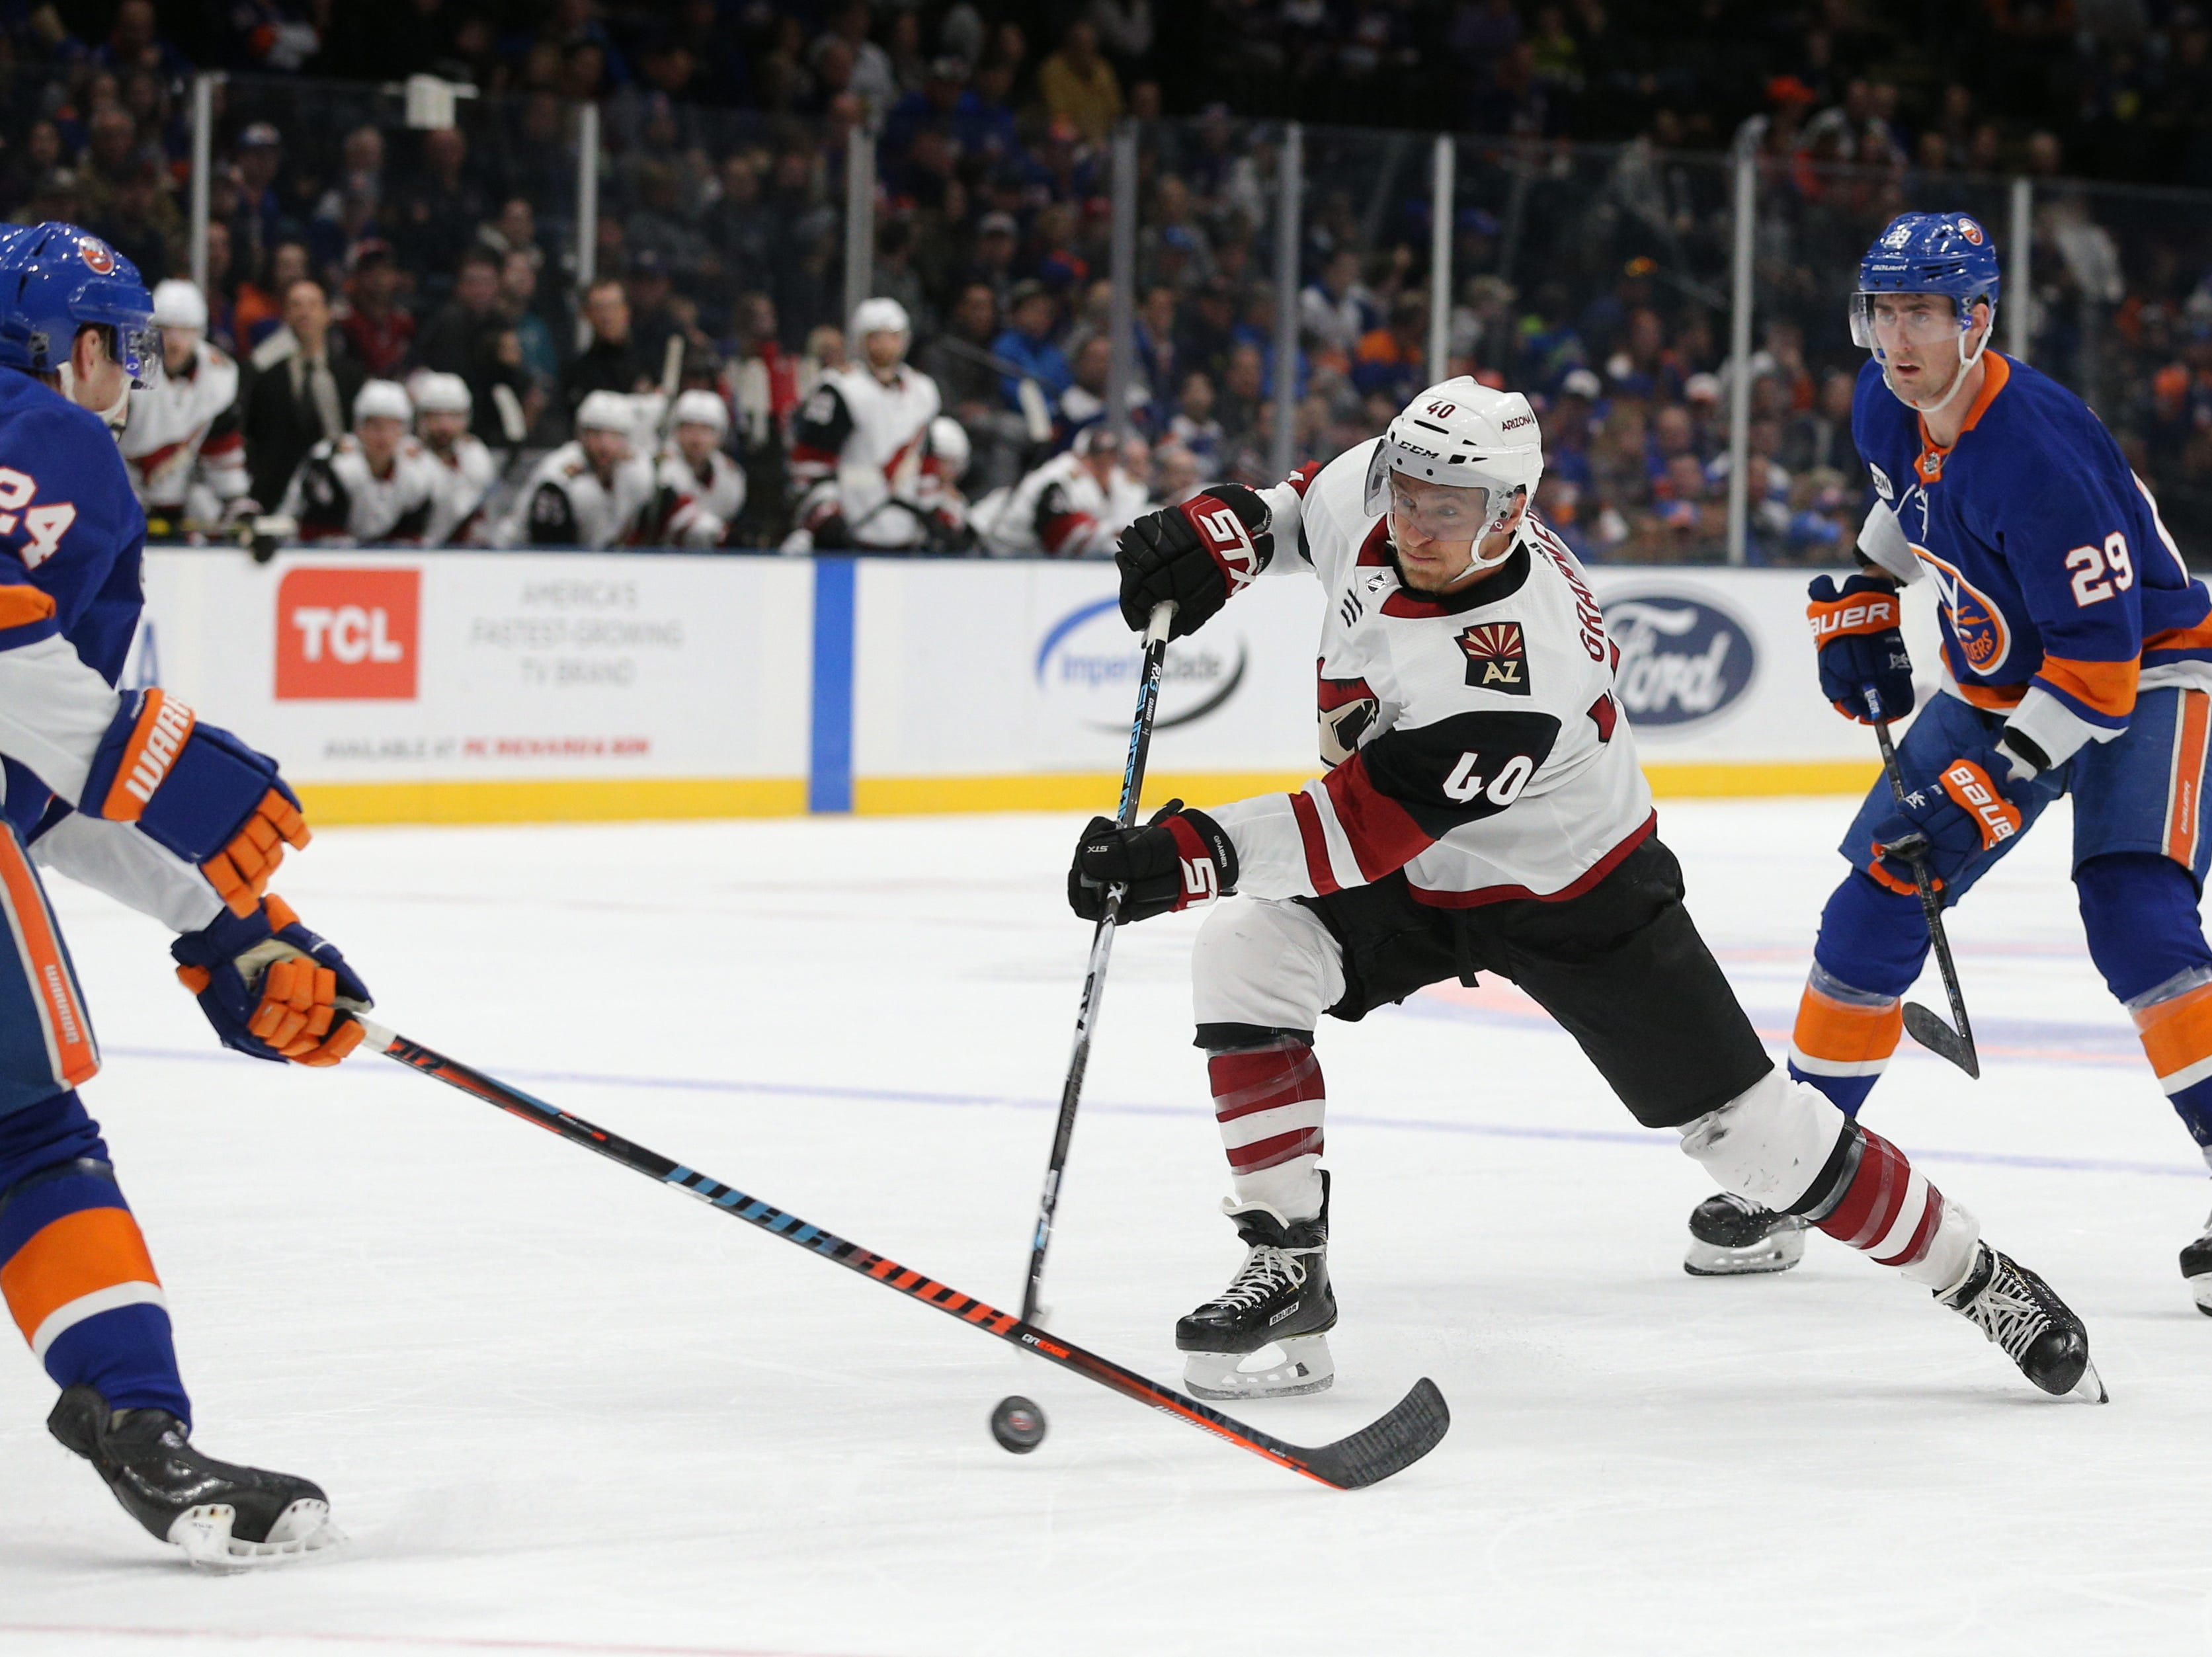 Coyotes right wing Michael Grabner (40) rips a shot past Islanders defenseman Scott Mayfield (24) during the first period of a game at Nassau Veterans Memorial Coliseum.